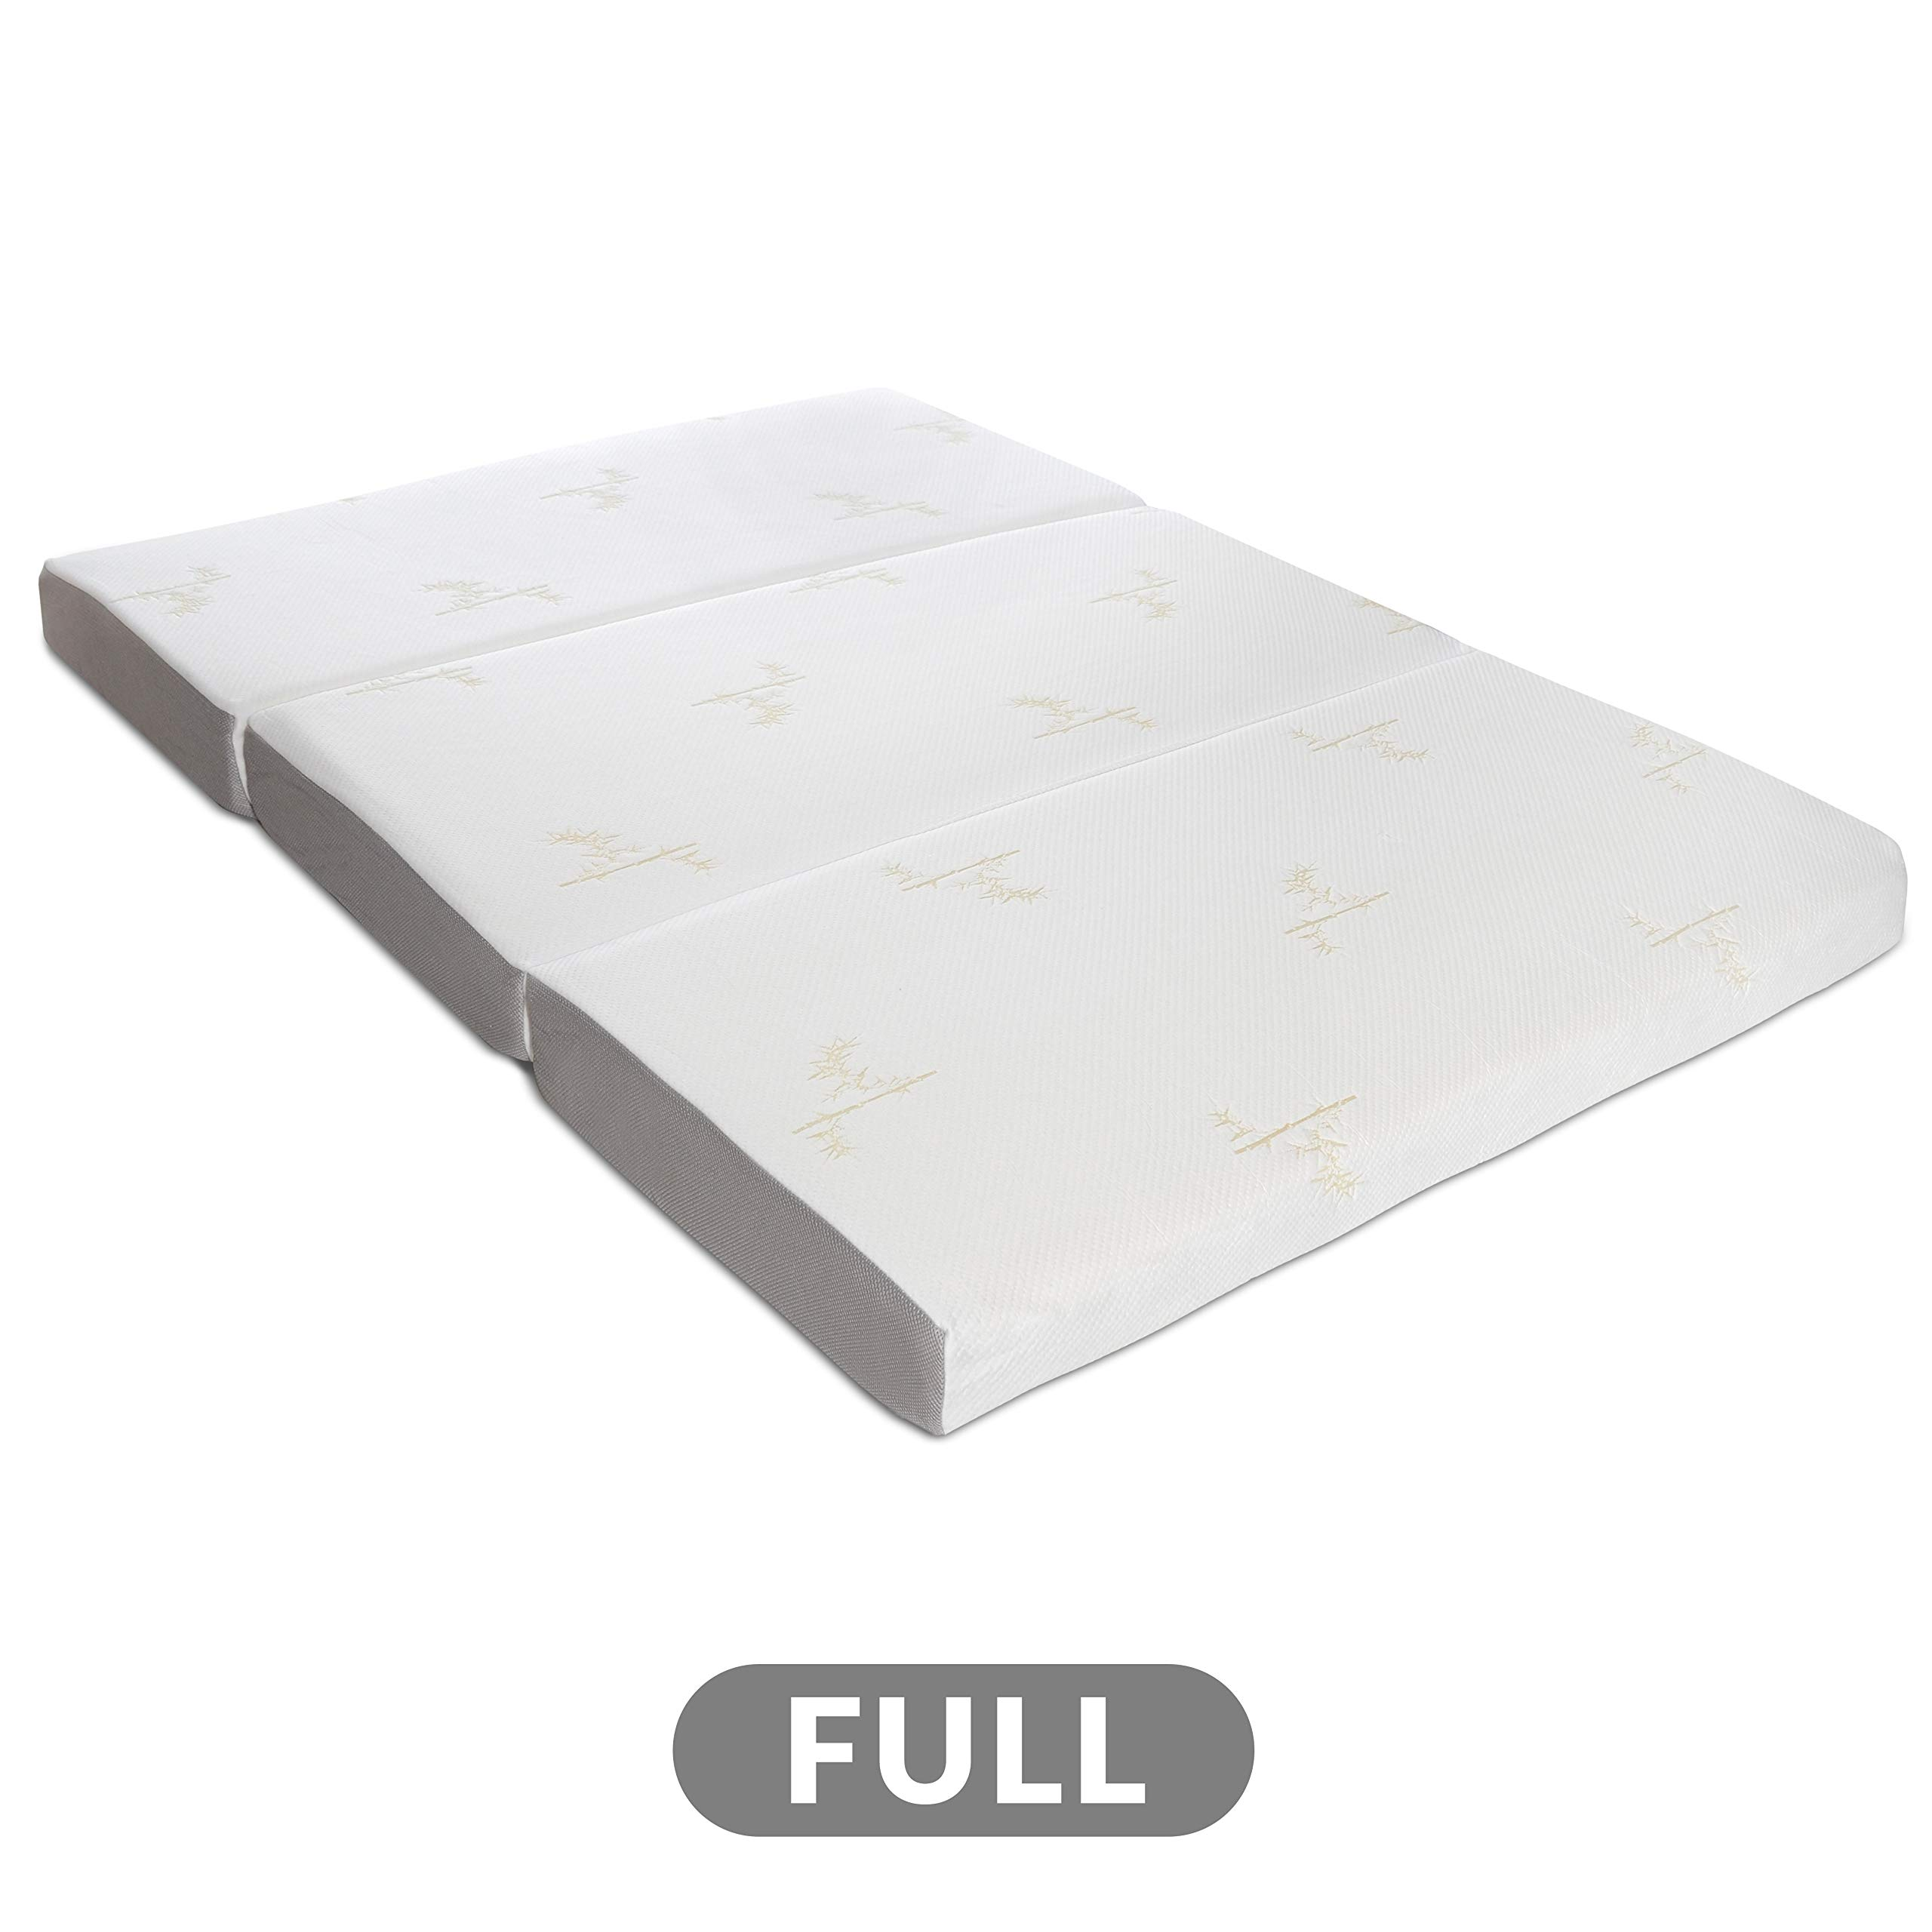 Milliard Tri Folding Memory Foam Mattress with Washable Cover Full (73 inches x 52 inches x 6 inches) by Milliard